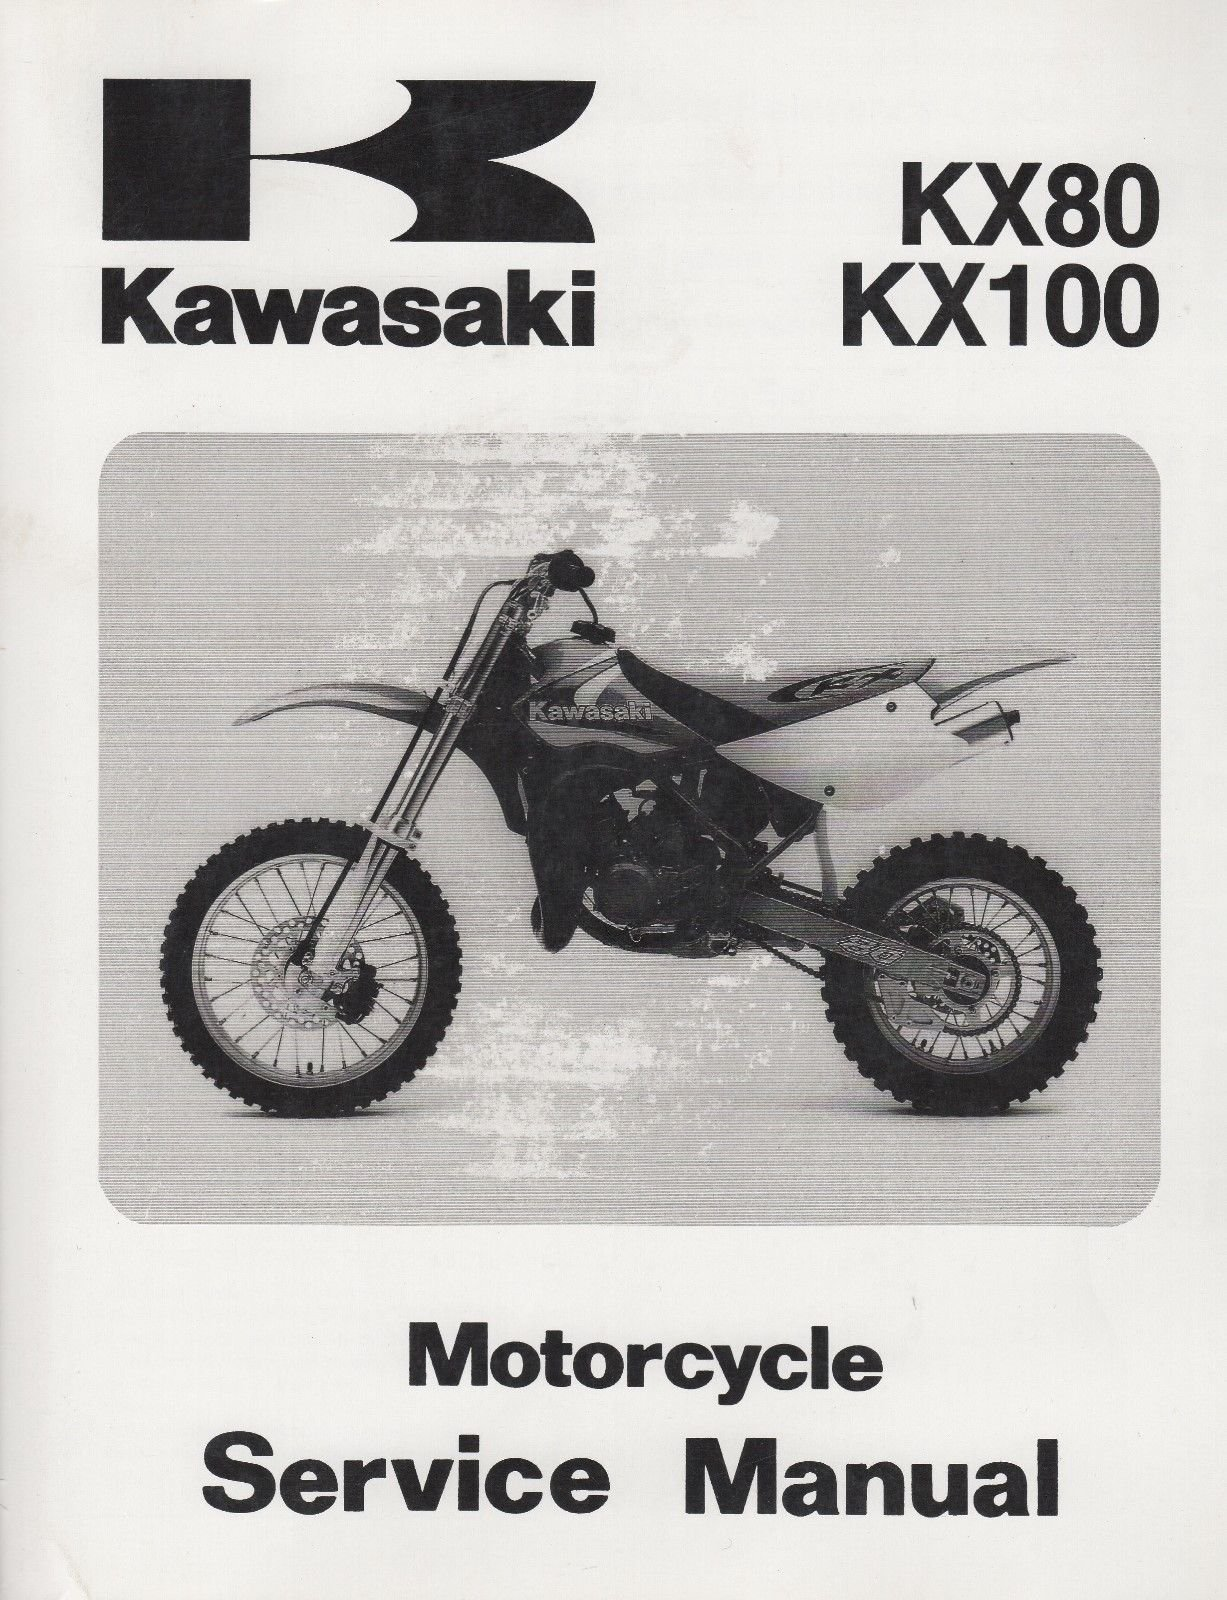 1991 1992 1993 1994 1995 1996 and 1997 Kawasaki KX80 and KX100 Motorcycle  Shop Repair Workshop Service Manual, Part Number 99924-1144-04: Ltd.  Kawasaki ...